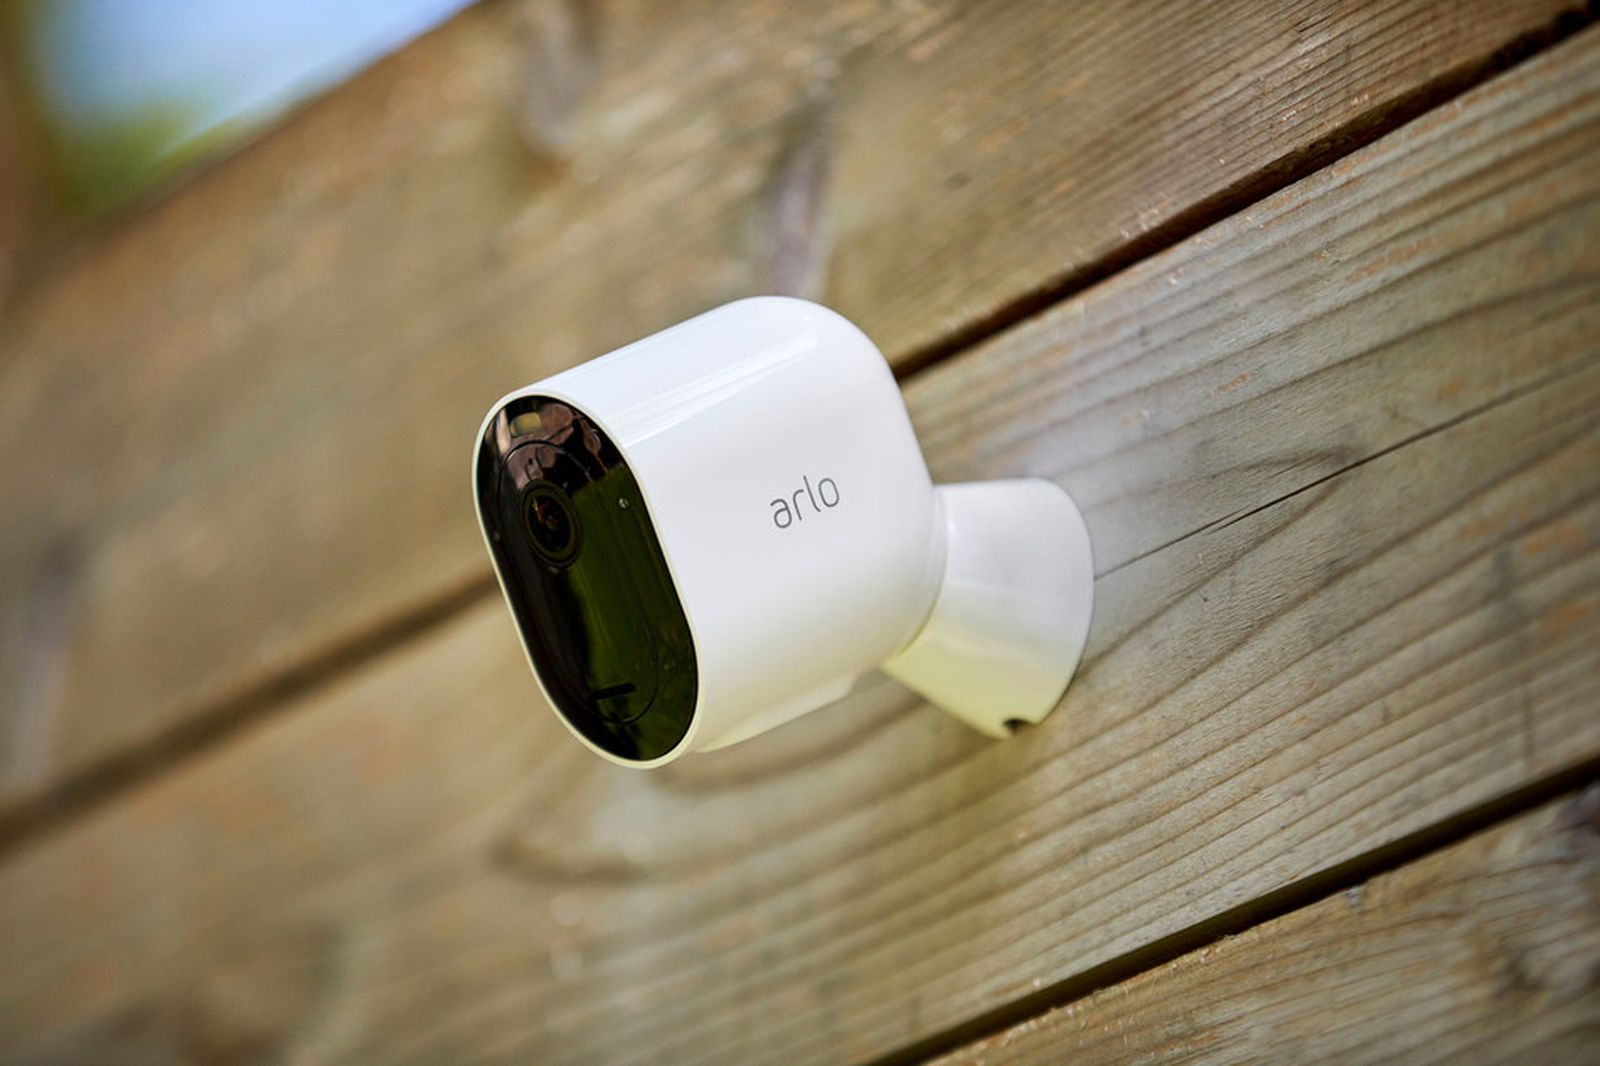 Arlo Introduces Pro 4 Security Camera With Easier Wi-Fi Setup, But Lacks HomeKit at Launch [Updated]